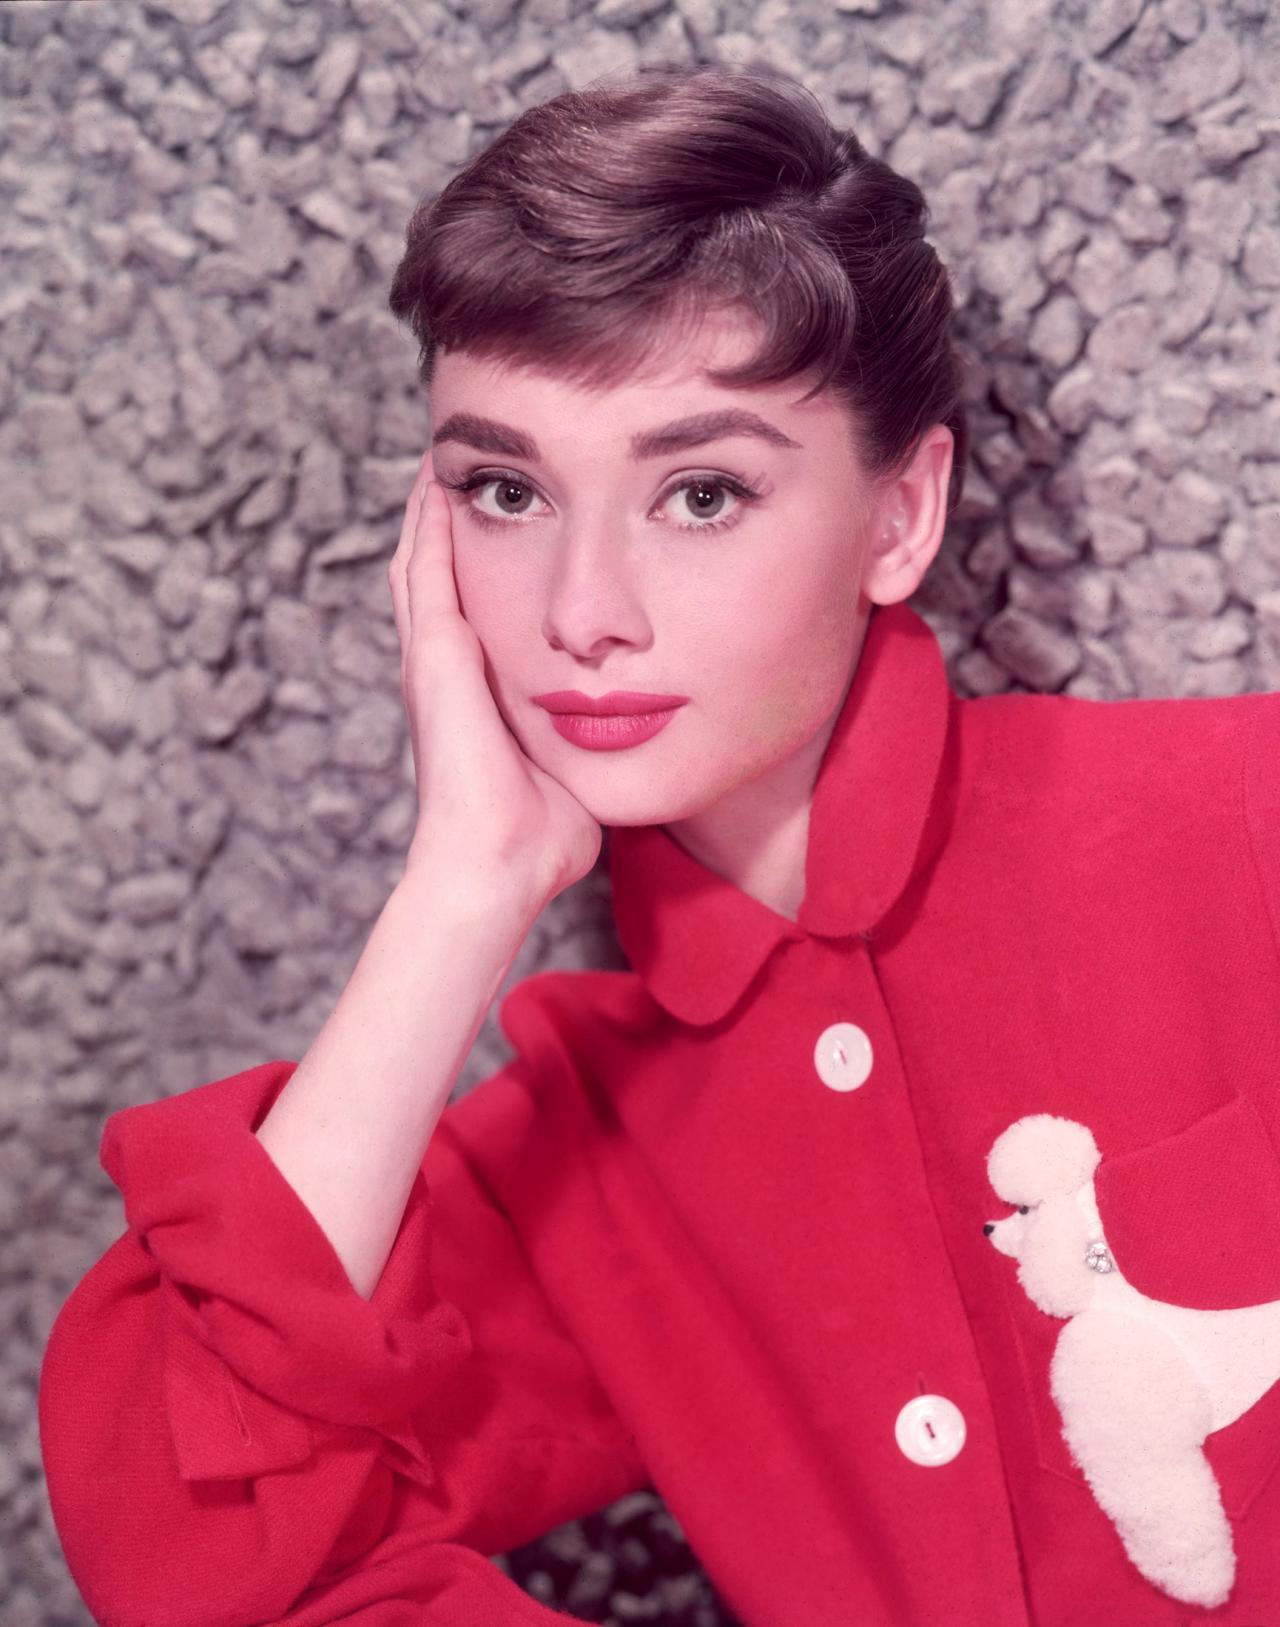 Audrey Hepburn Images Audrey Hepburn Hd Wallpaper And